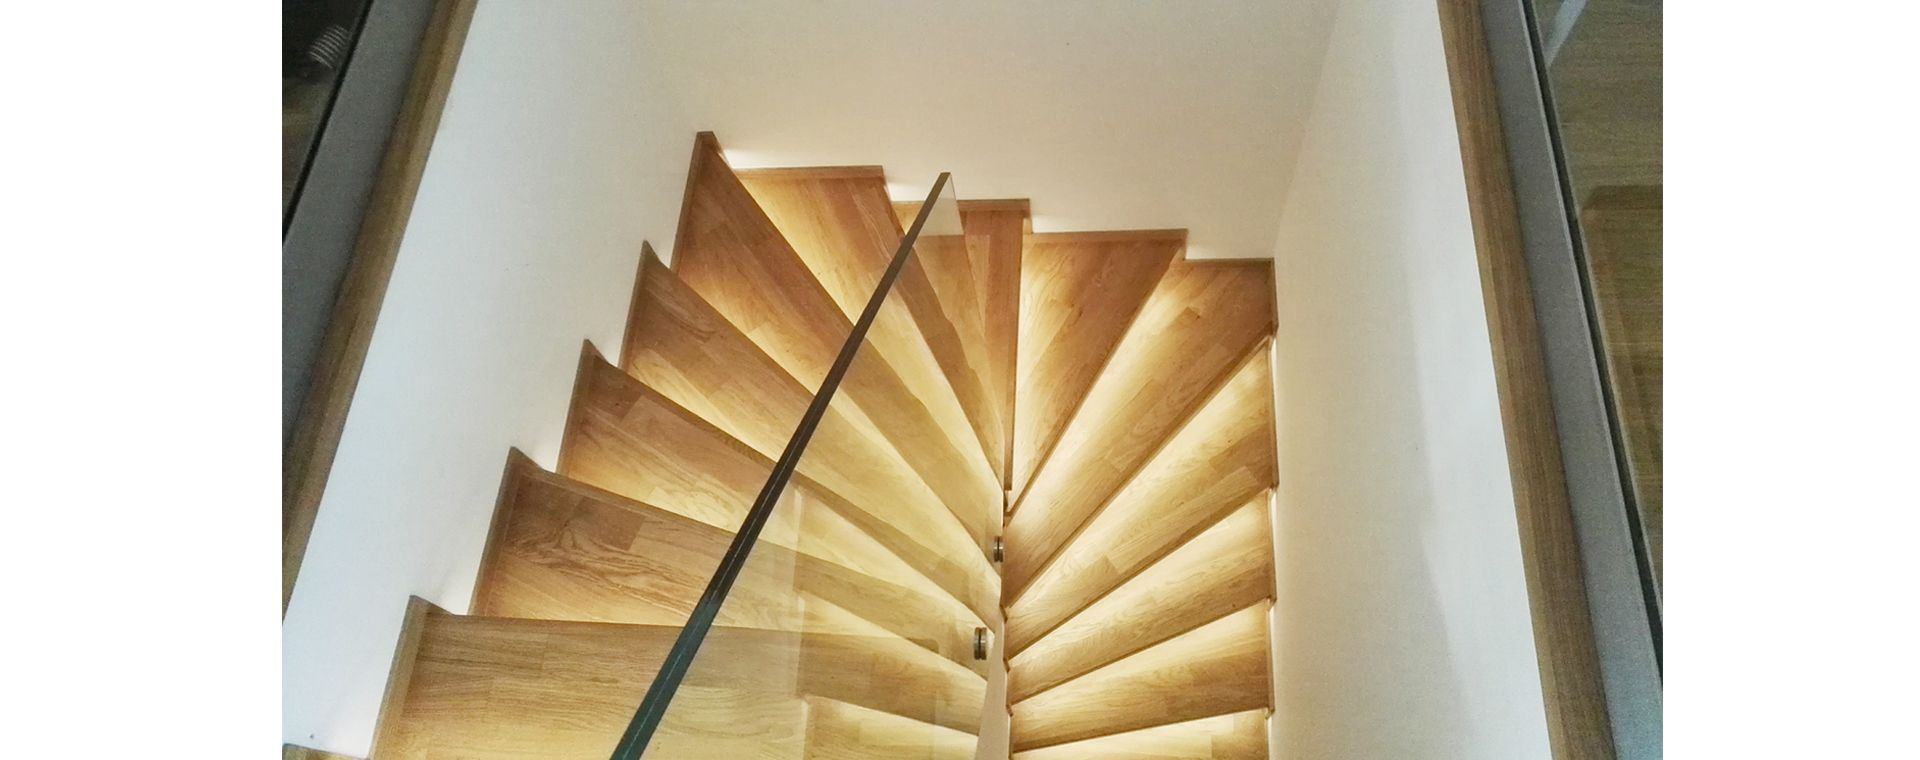 The architectural concept and realization of the stairs, Prague 6, lighting design, CZ